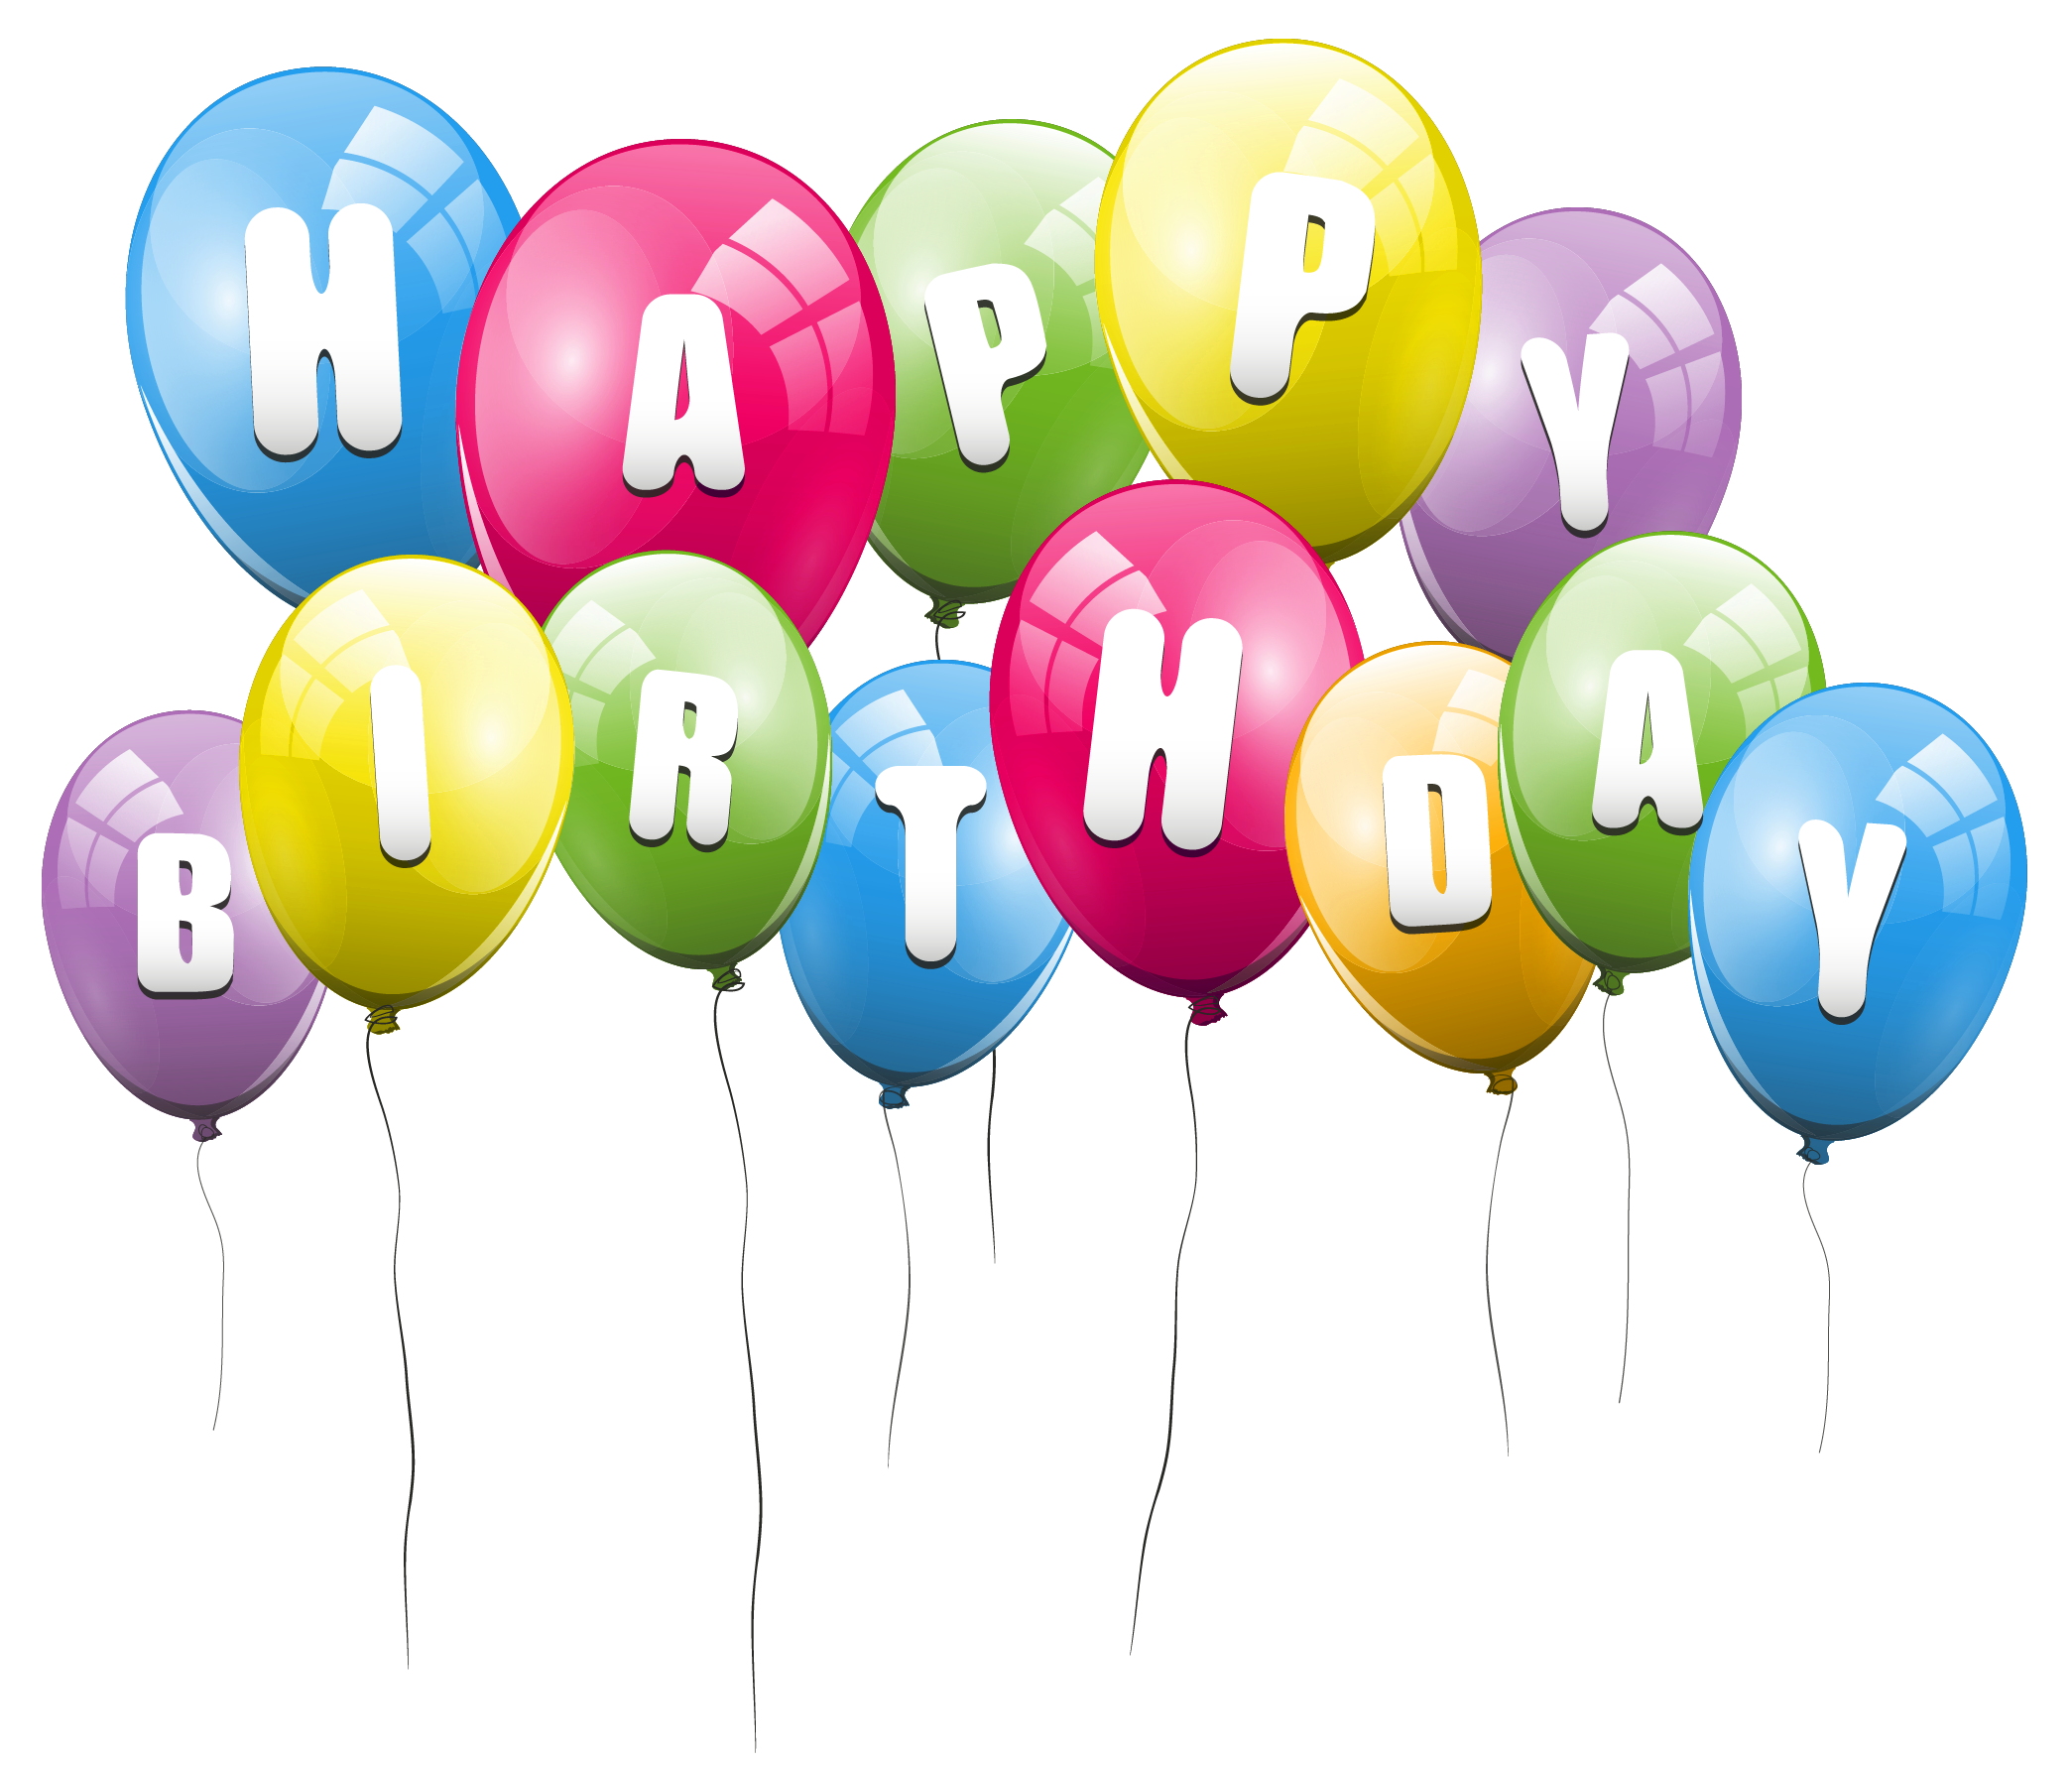 Happy birthday clipart for air force png black and white Happy birthday balloons pic clipart images gallery for free download ... png black and white